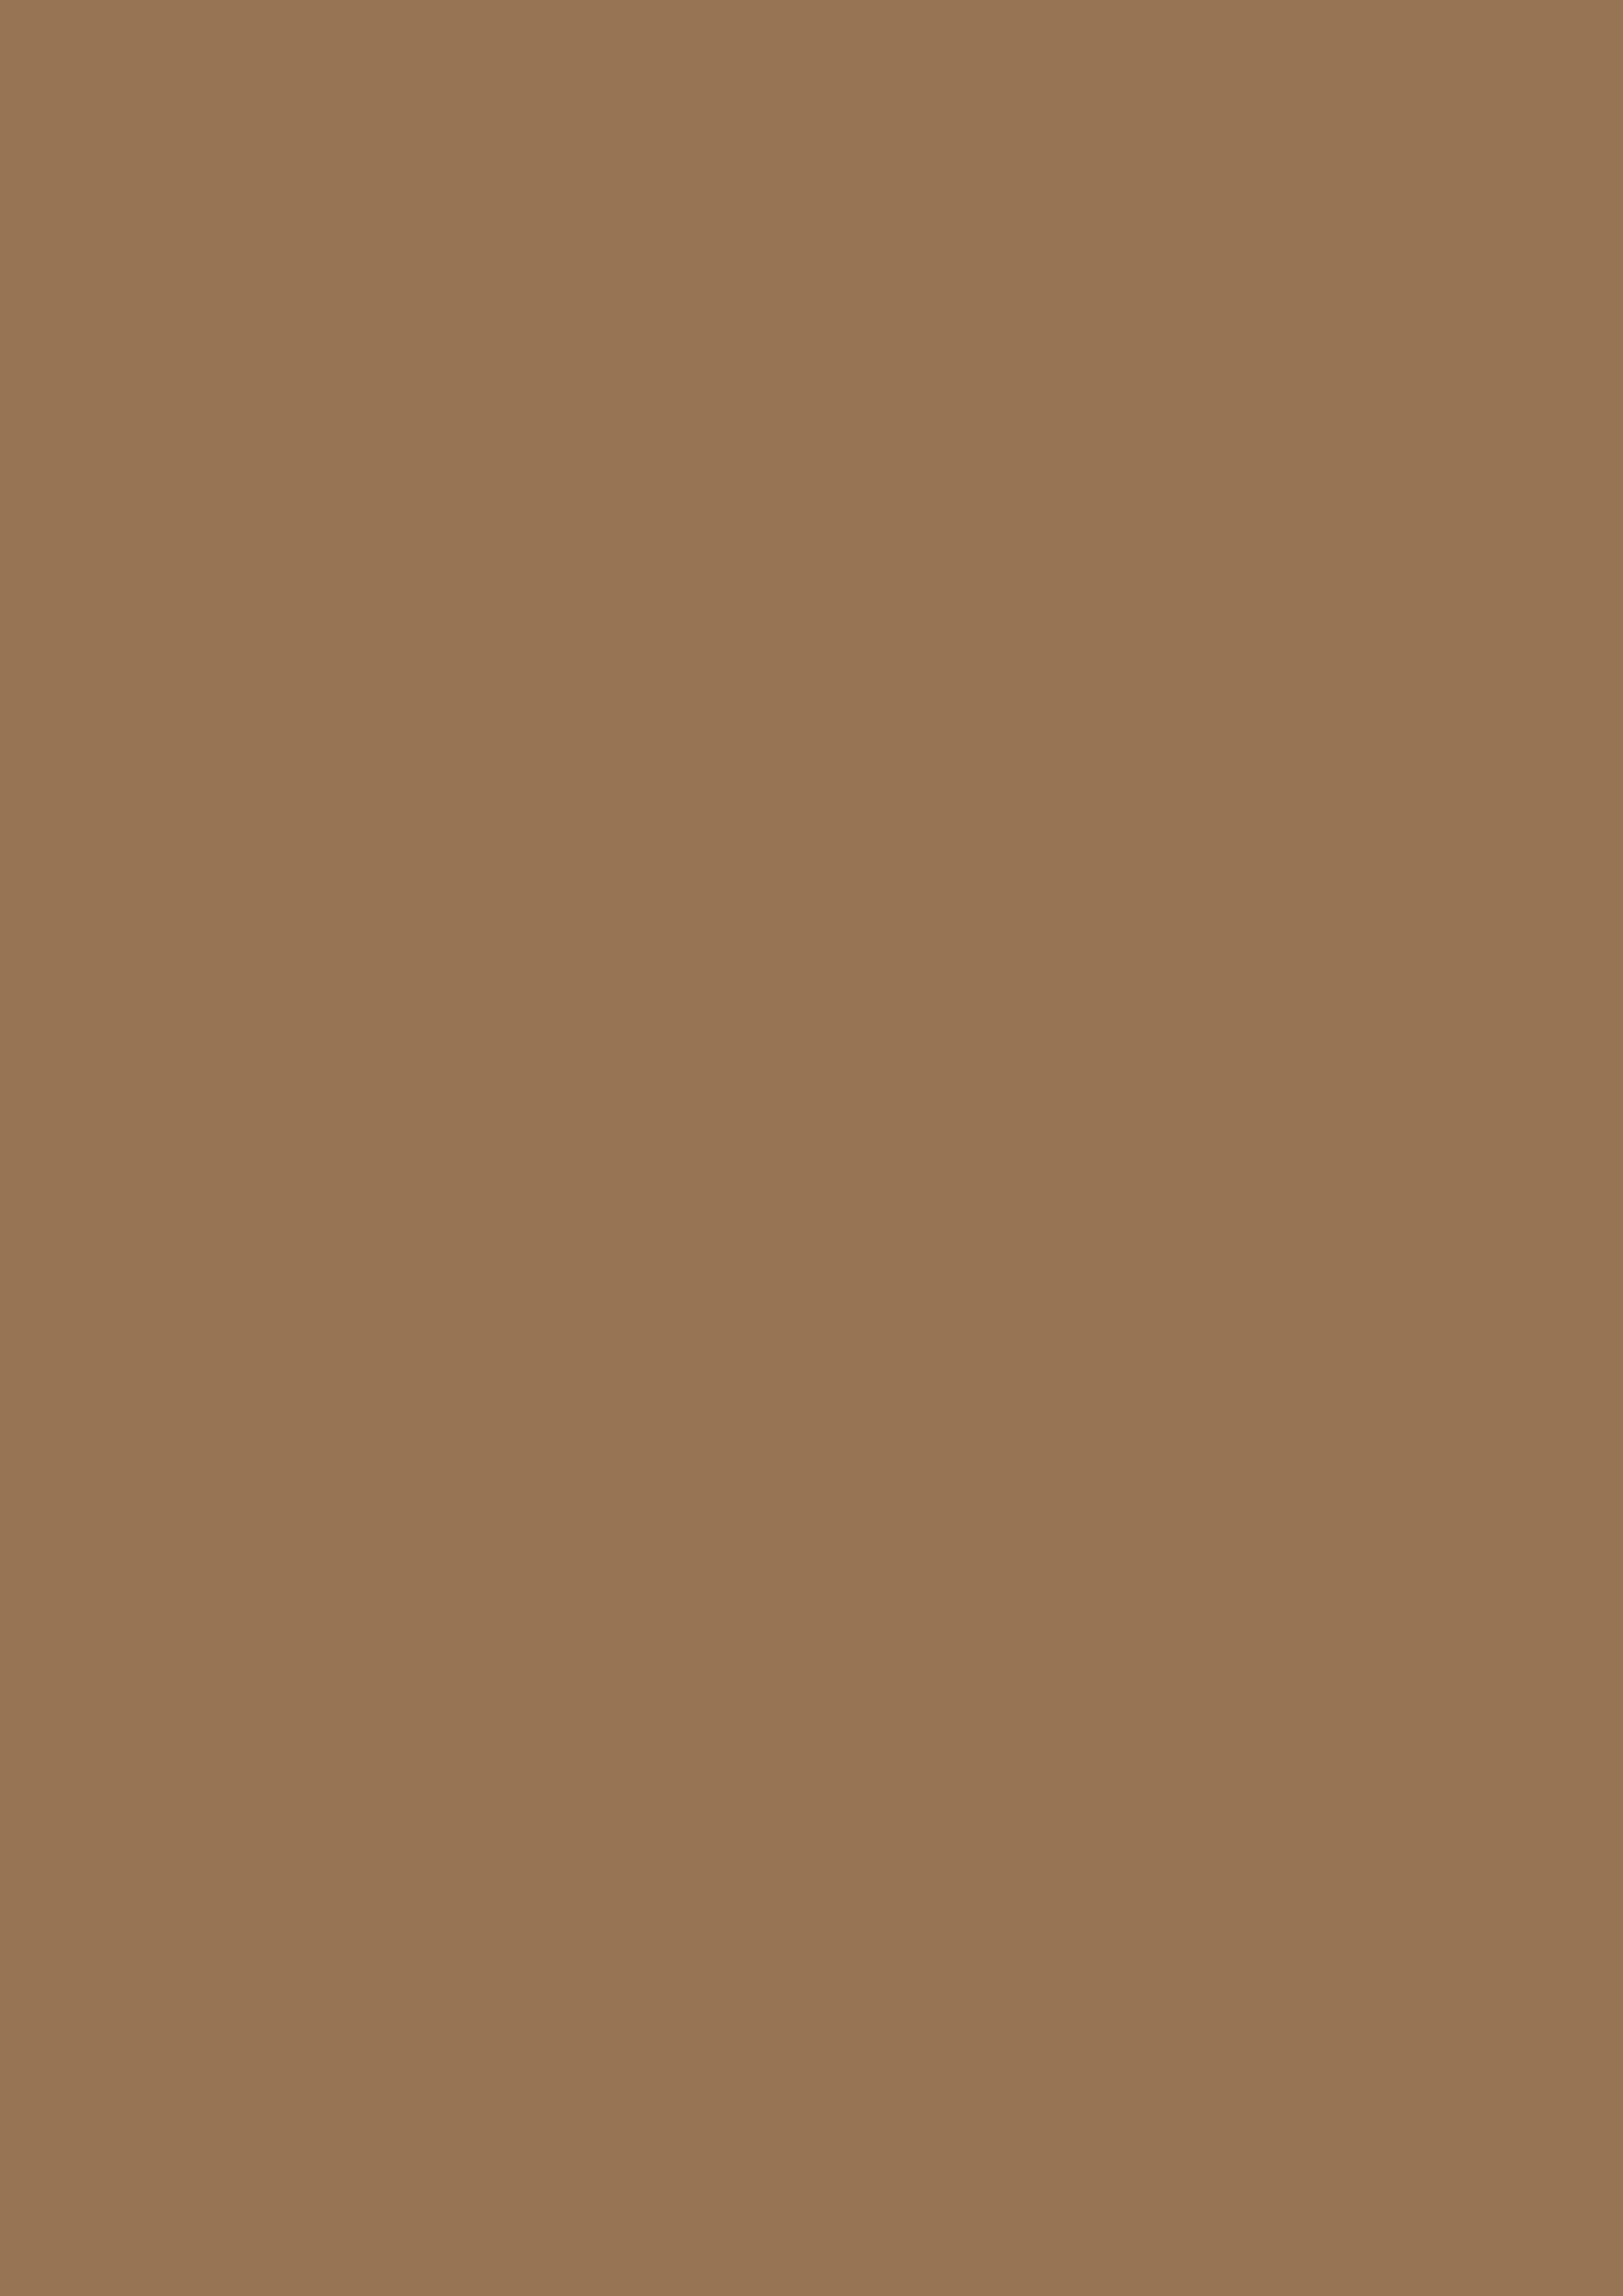 2480x3508 Pale Brown Solid Color Background